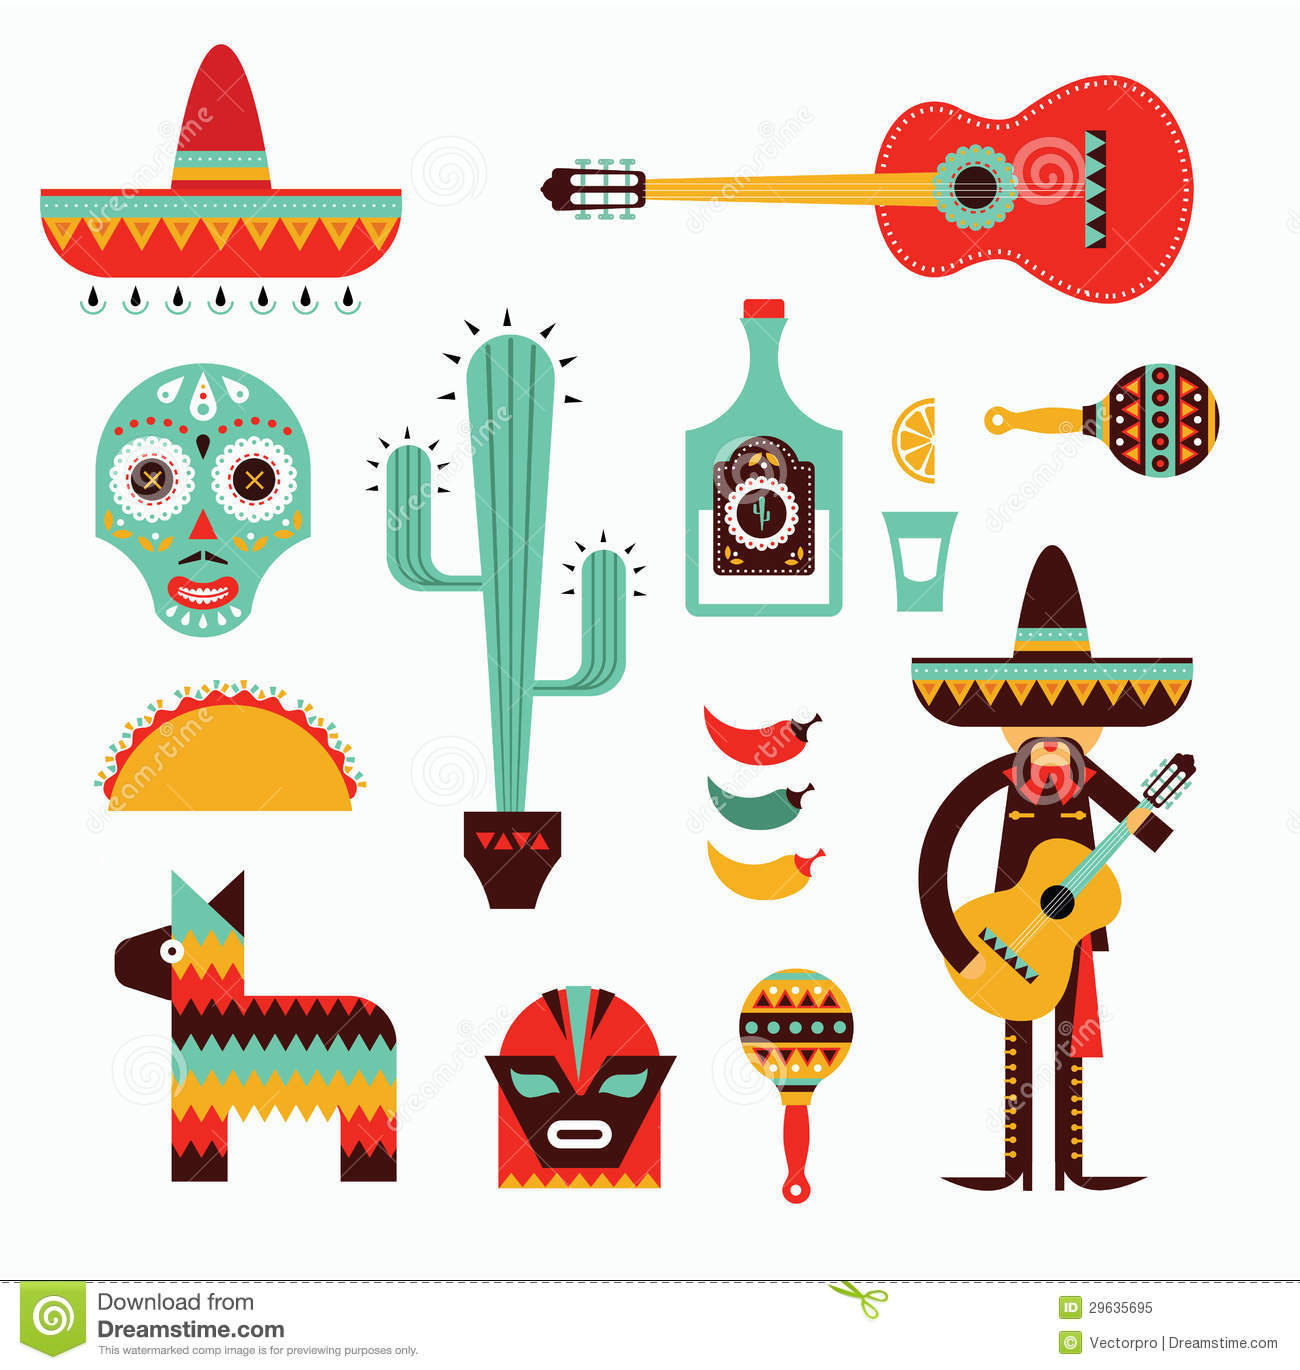 Vecor illustration of various stylized icons for Mexico.